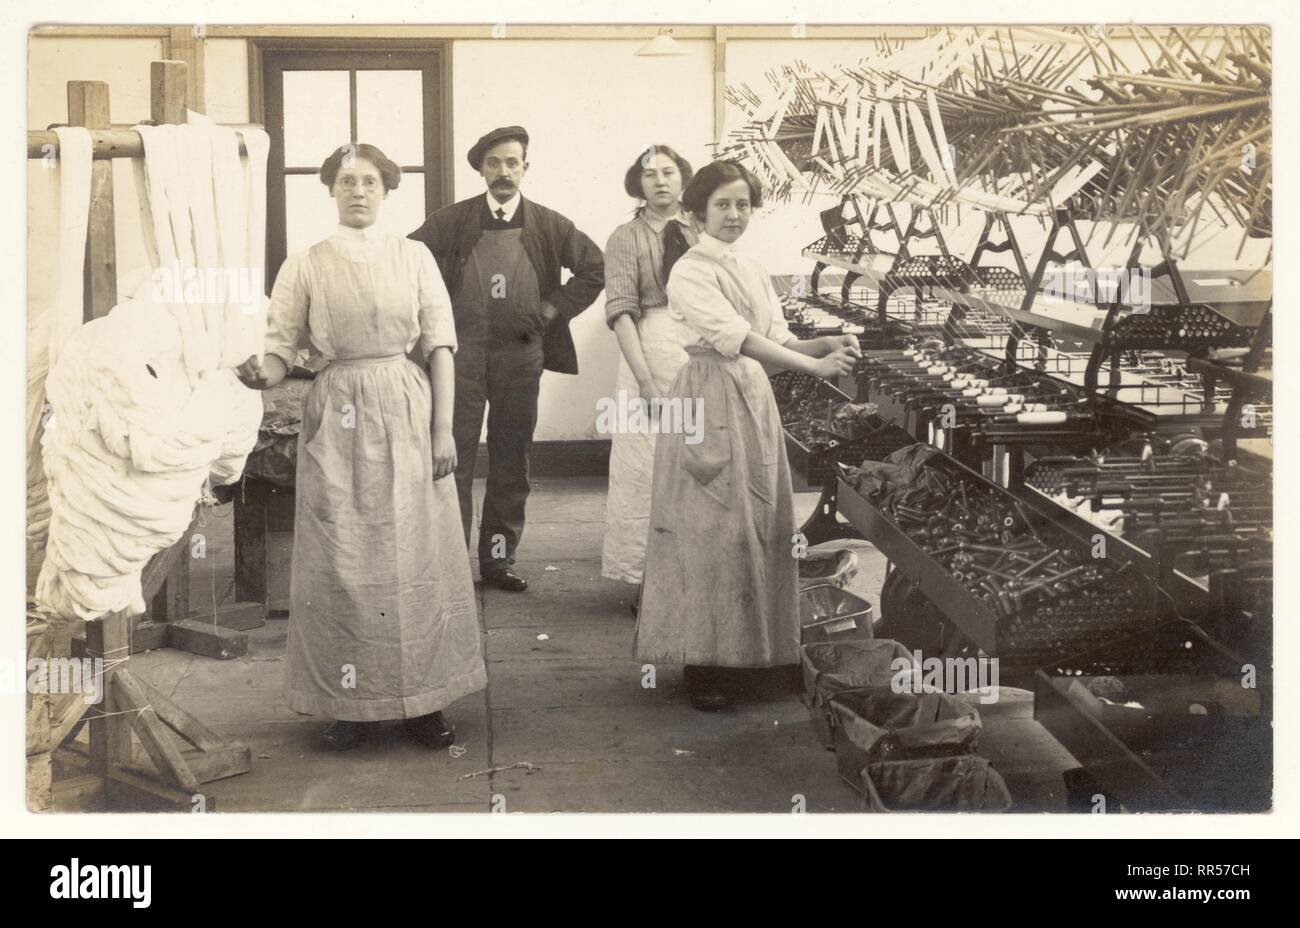 Early 1900's postcard of bobbin winder girls and foreman, overseer or workman. Dried skeins of cotton from the rack are put on the swift of the winding machine that winds yarn from the skein onto bobbins, Circa 1915, Lancashire, U.K. Stock Photo